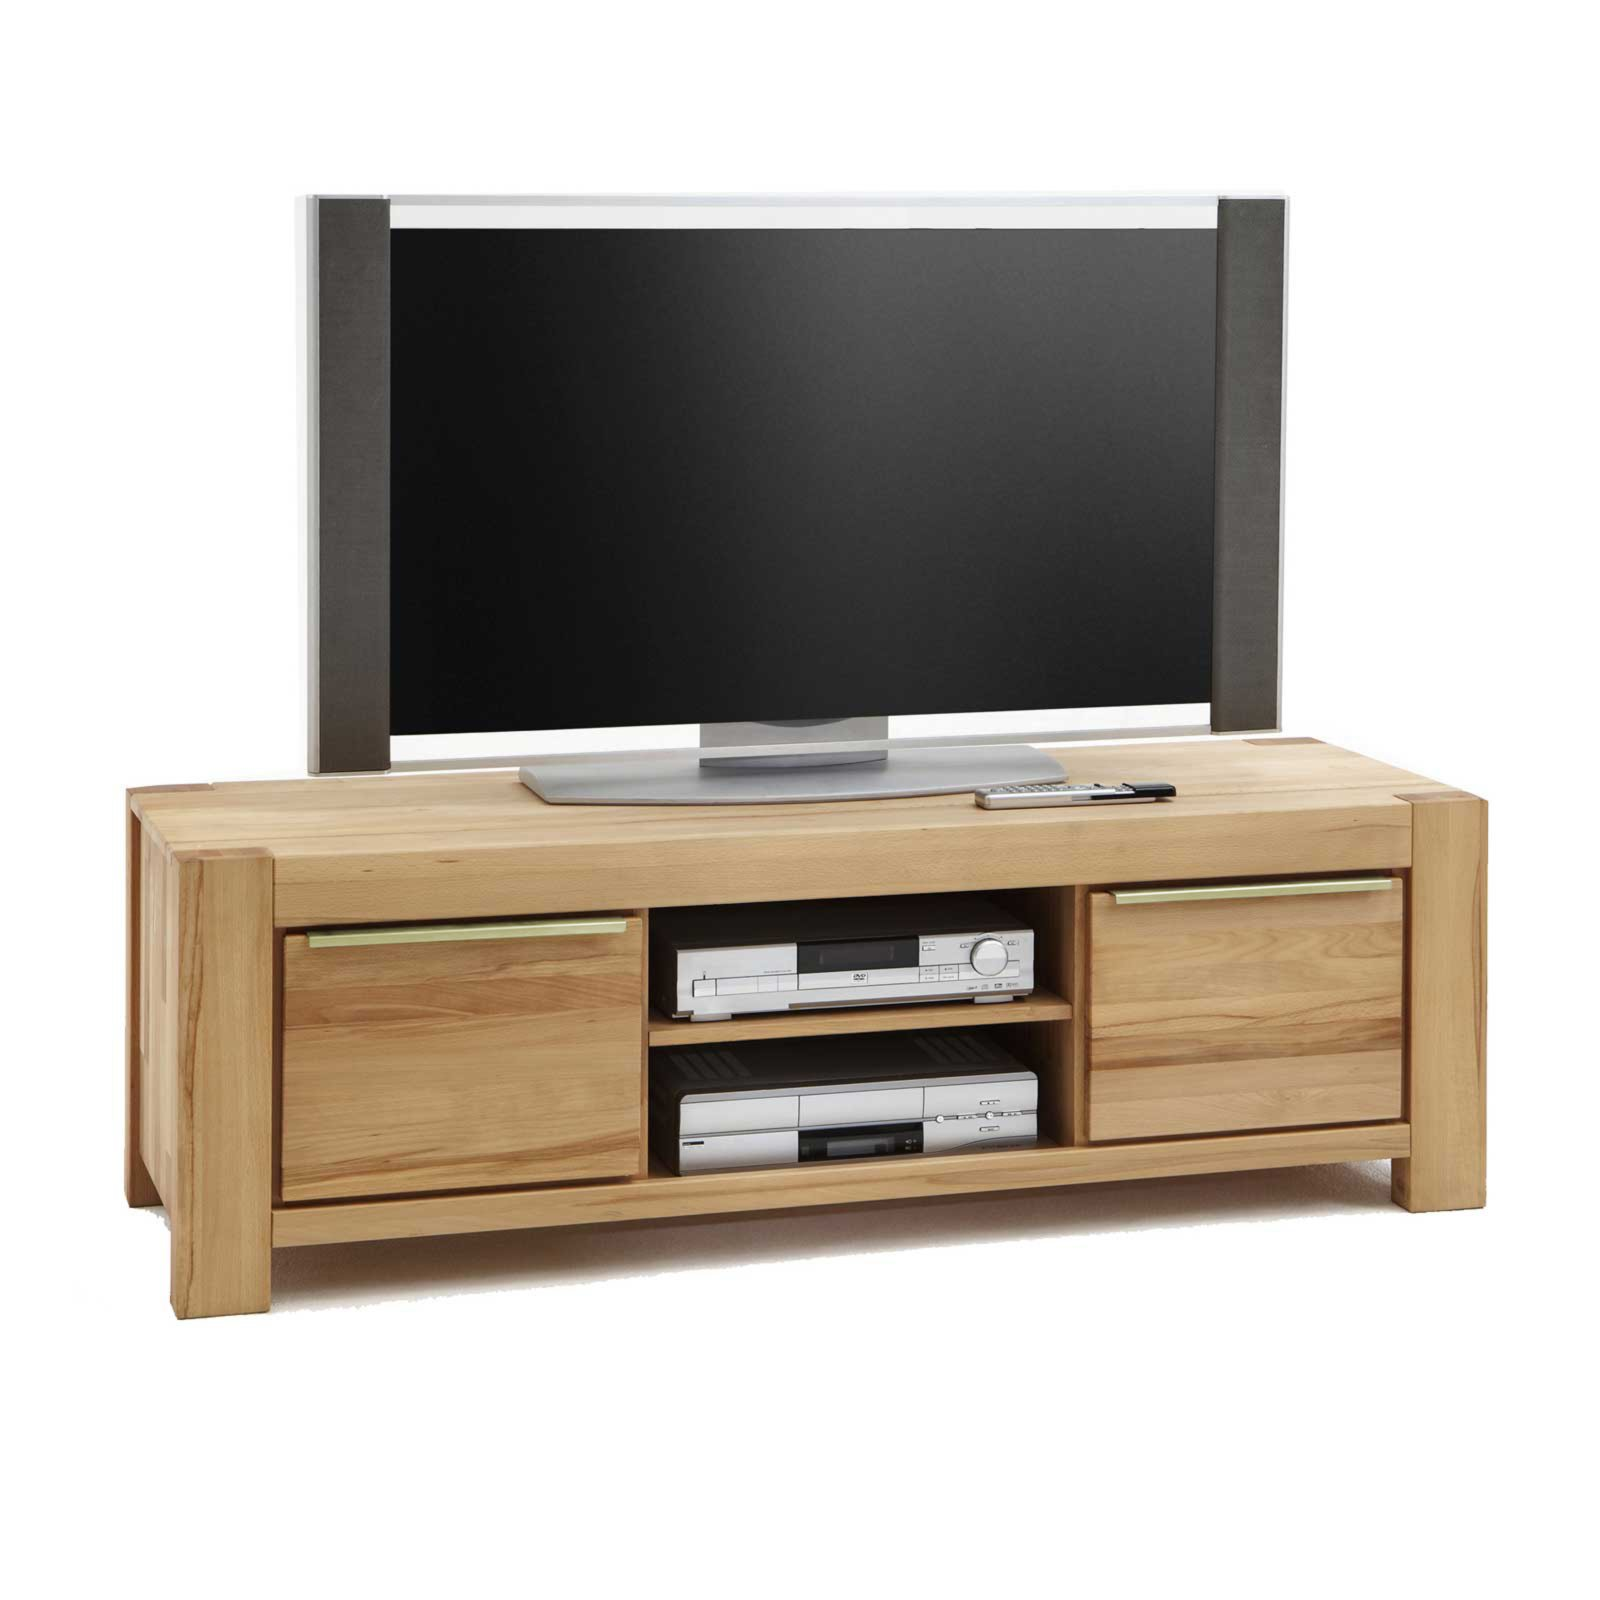 tv kommode nena massivholz kernbuche tv lowboards. Black Bedroom Furniture Sets. Home Design Ideas